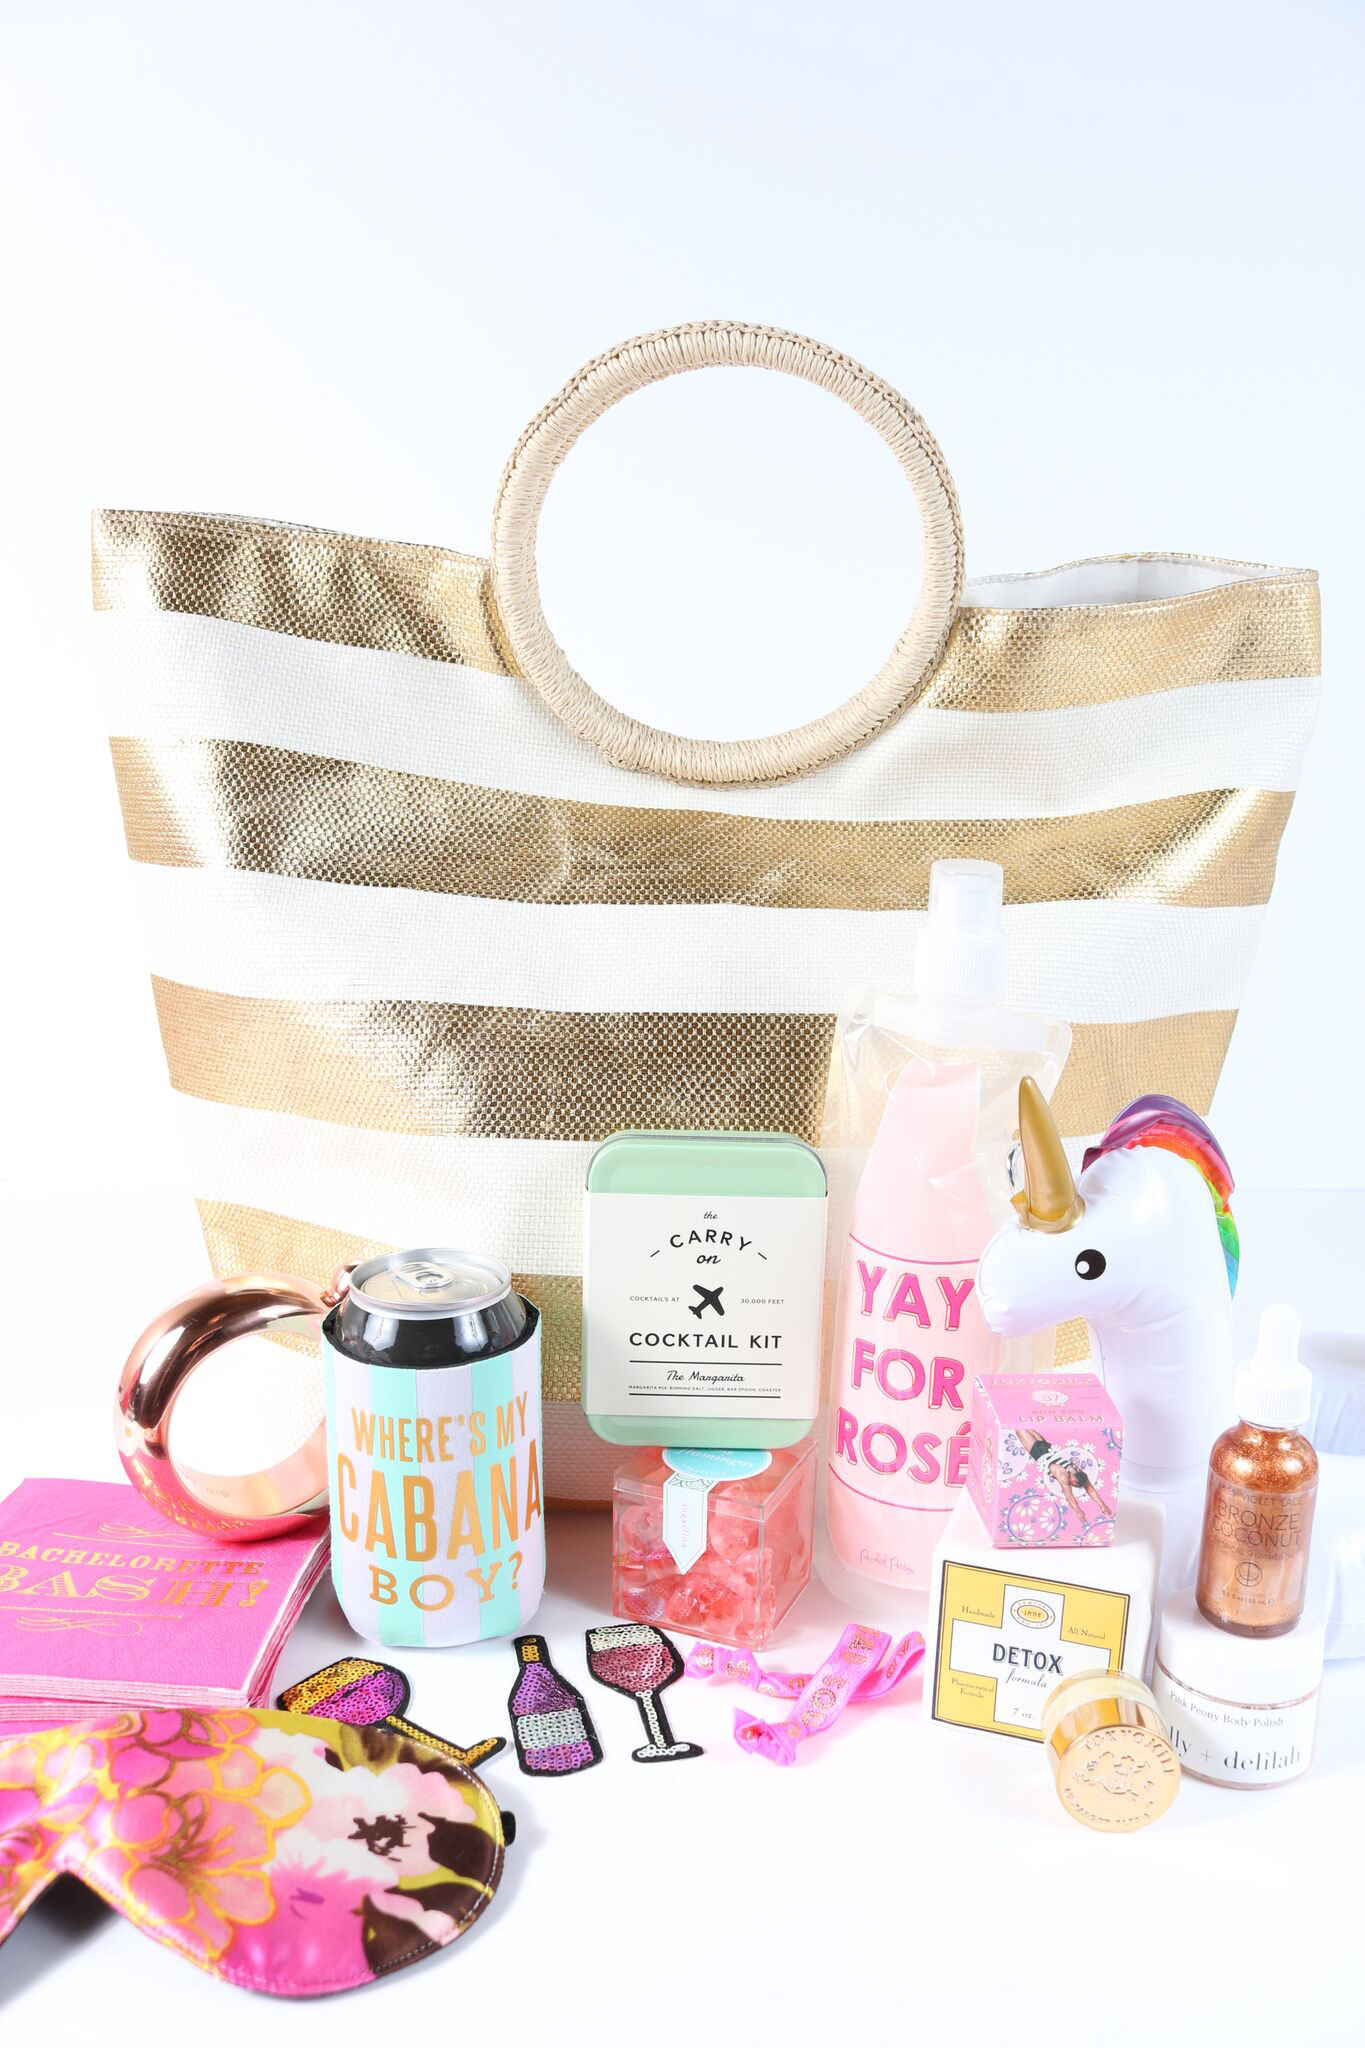 Wedding welcome bag striped tote bag with goodies inside The Welcome Bag Committee Jordan Payne